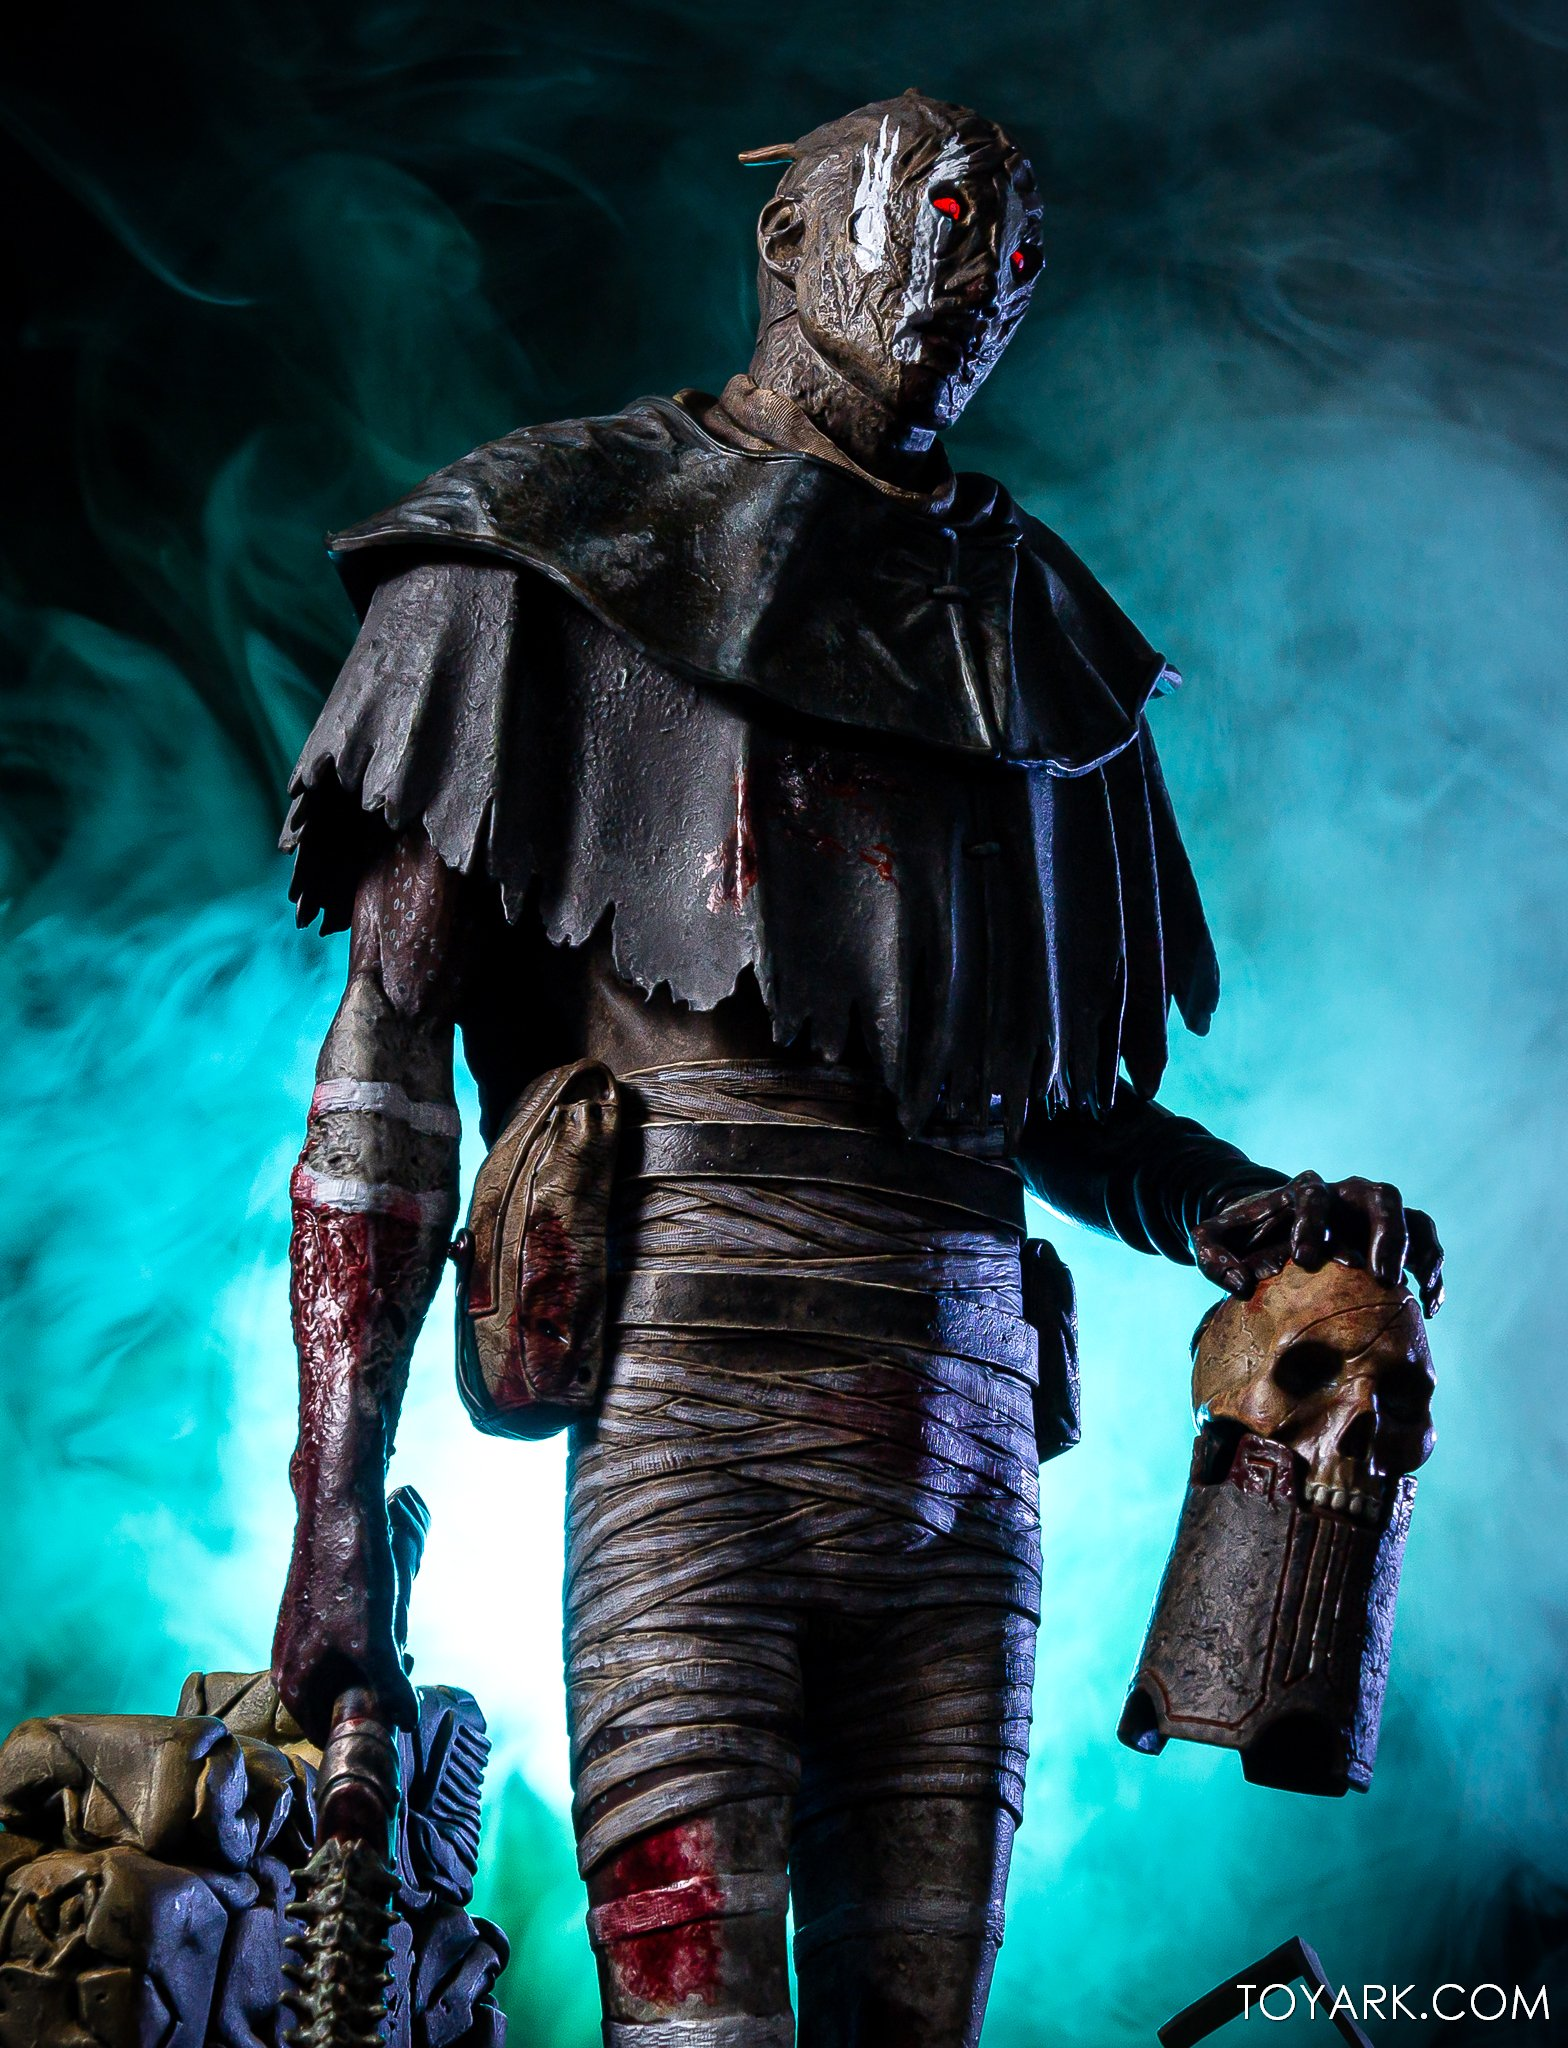 https://news.toyark.com/wp-content/uploads/sites/4/2020/02/Gecco-The-Wraith-Statue-028.jpg